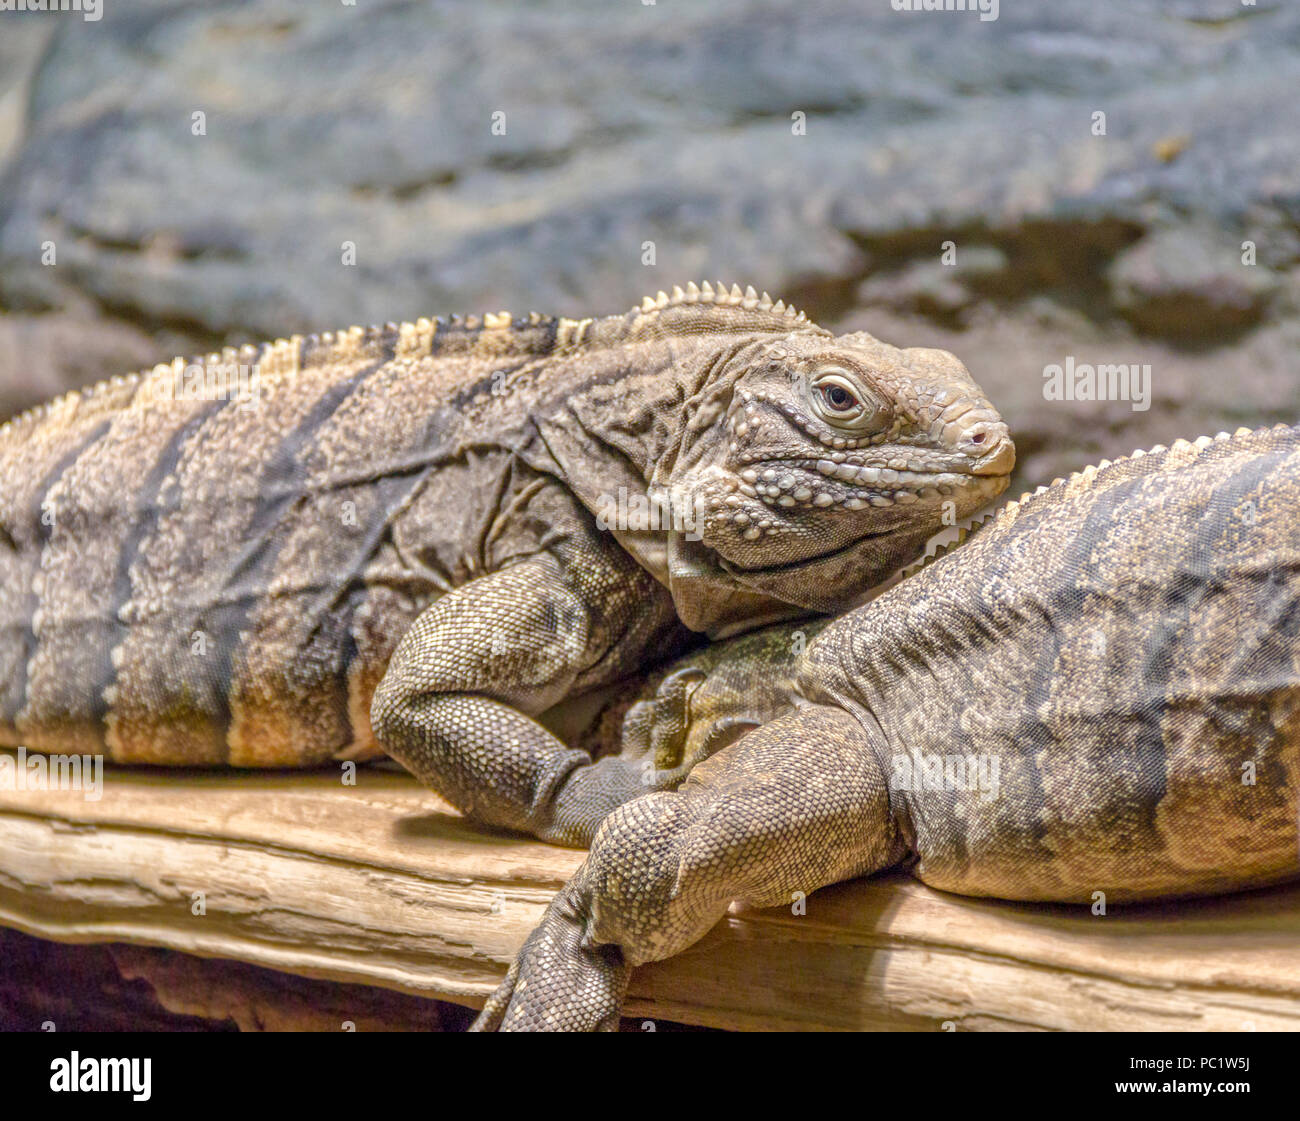 lizards named Cuban rock iguana on a tree trunk in rocky ambiance - Stock Image